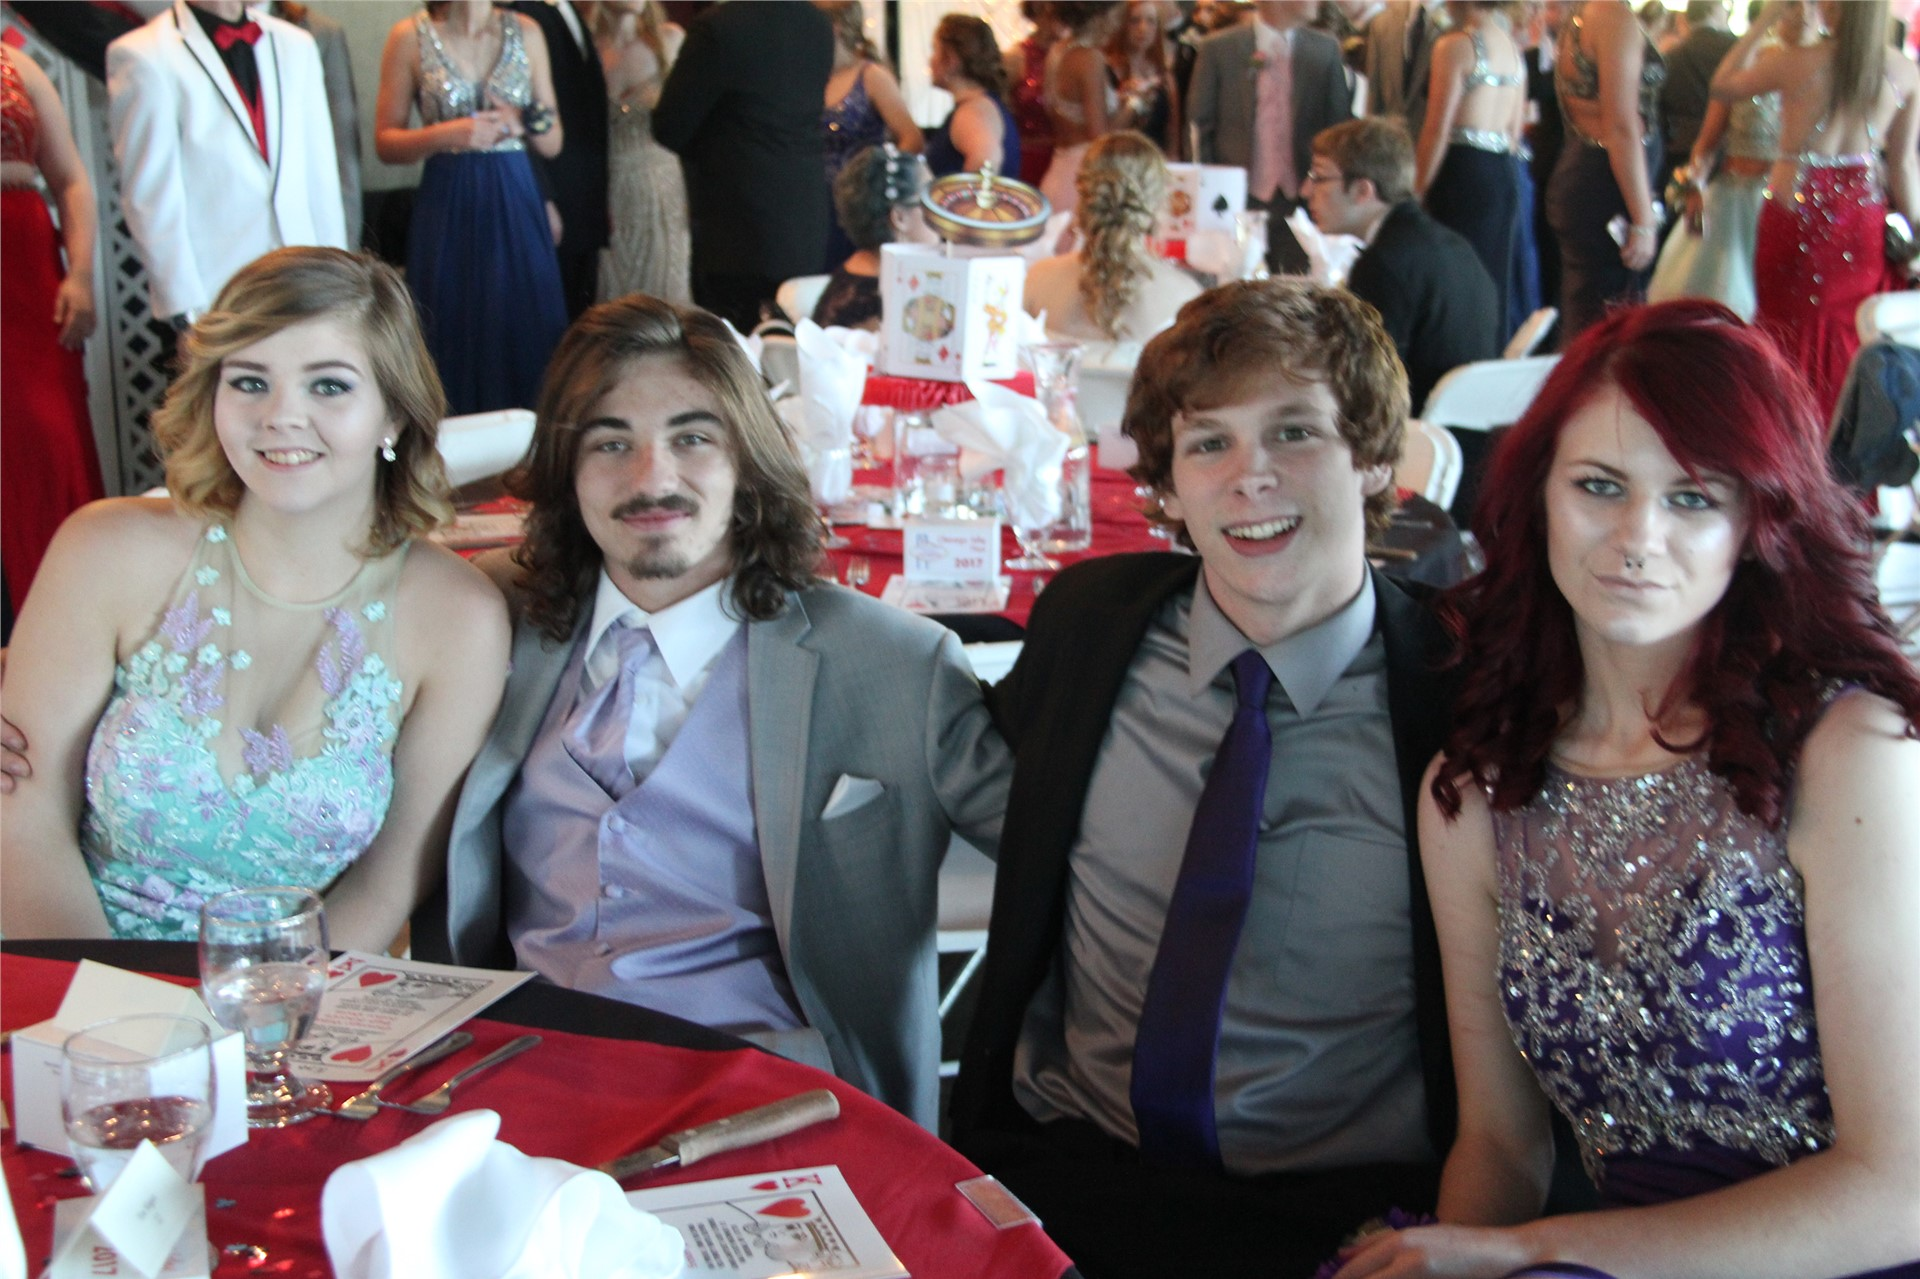 four students pose sitting for picture at prom